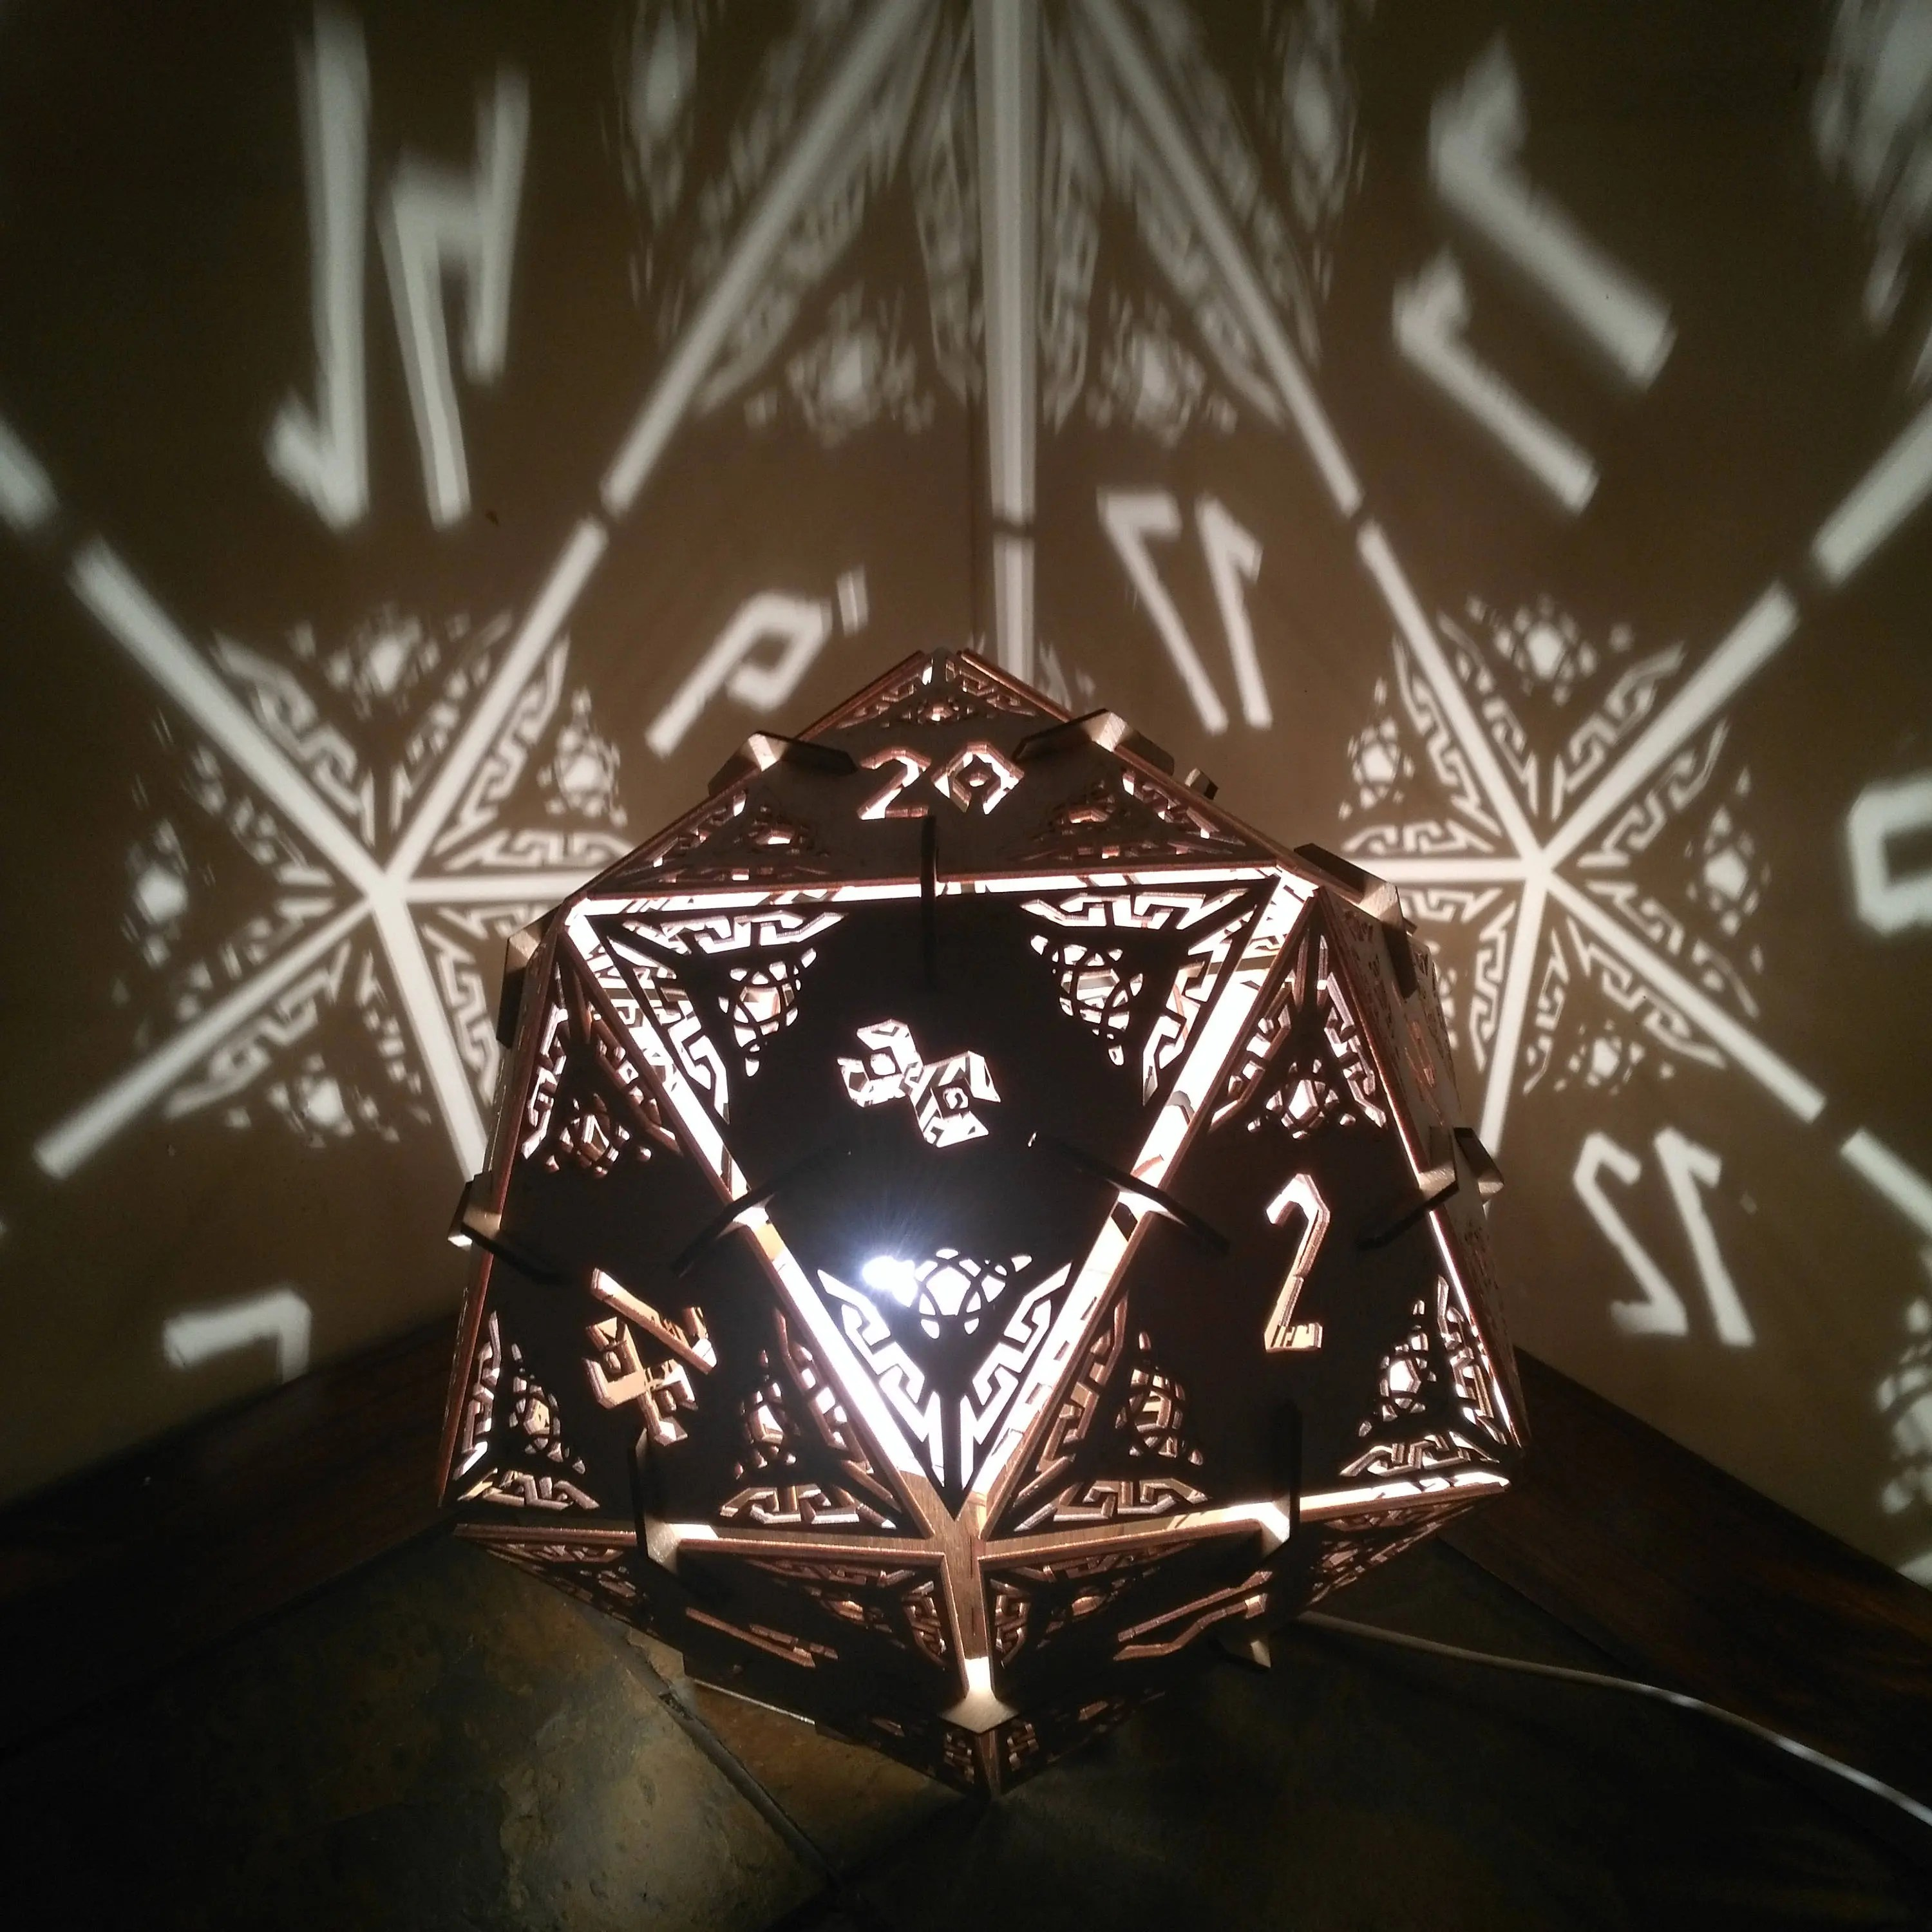 D20 Dungeons and Dragons Dice Desk Lamp